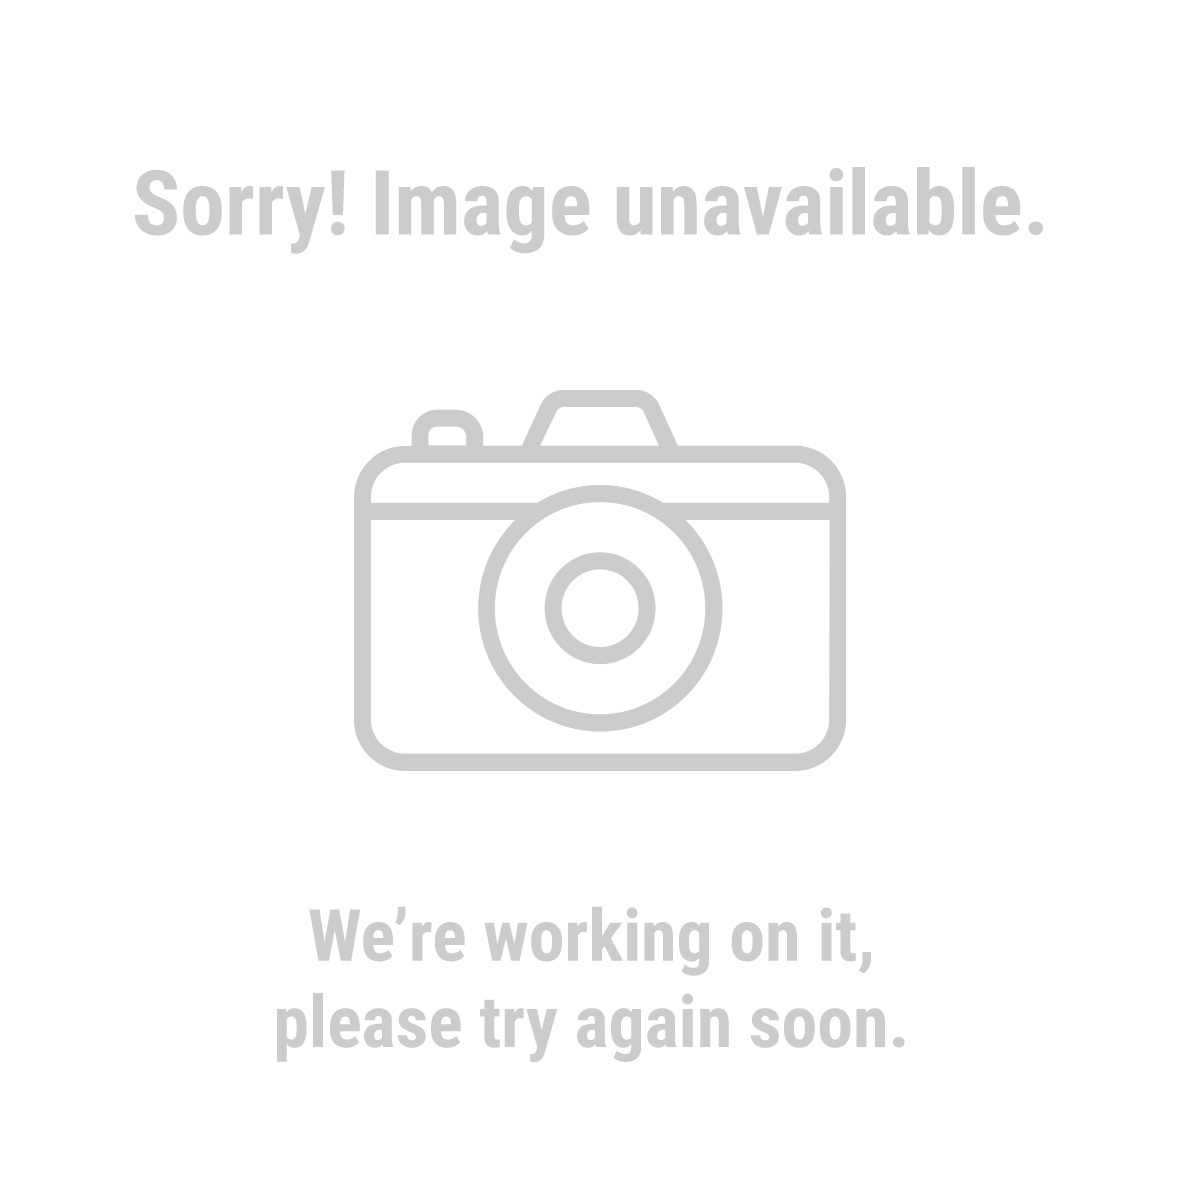 "Warrior 93273 4"" Grinding Wheel Assortment for Metal and Masonry - Pack of 10"